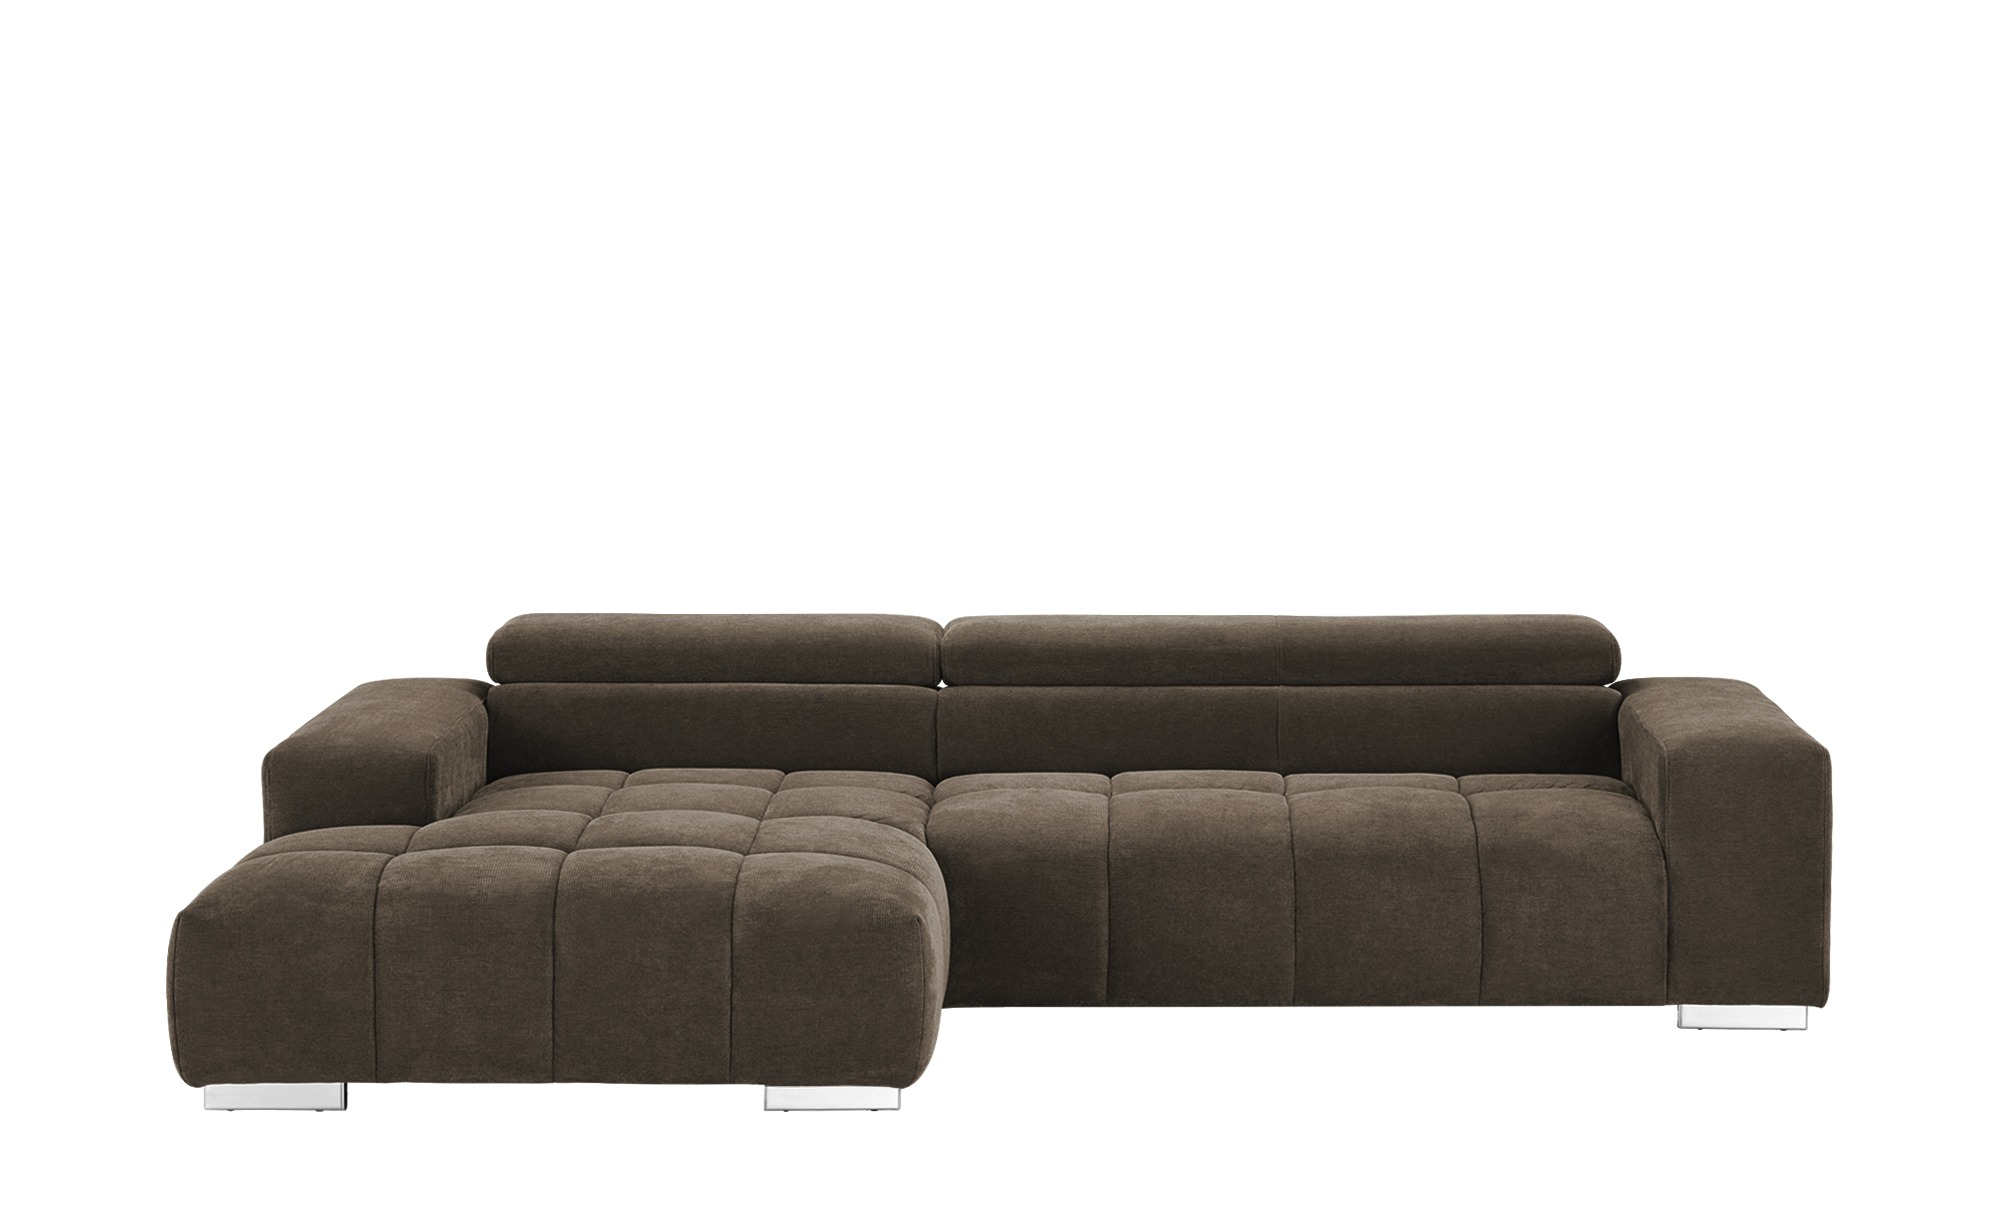 ecksofa origo breite h he 70 cm braun online kaufen bei woonio. Black Bedroom Furniture Sets. Home Design Ideas